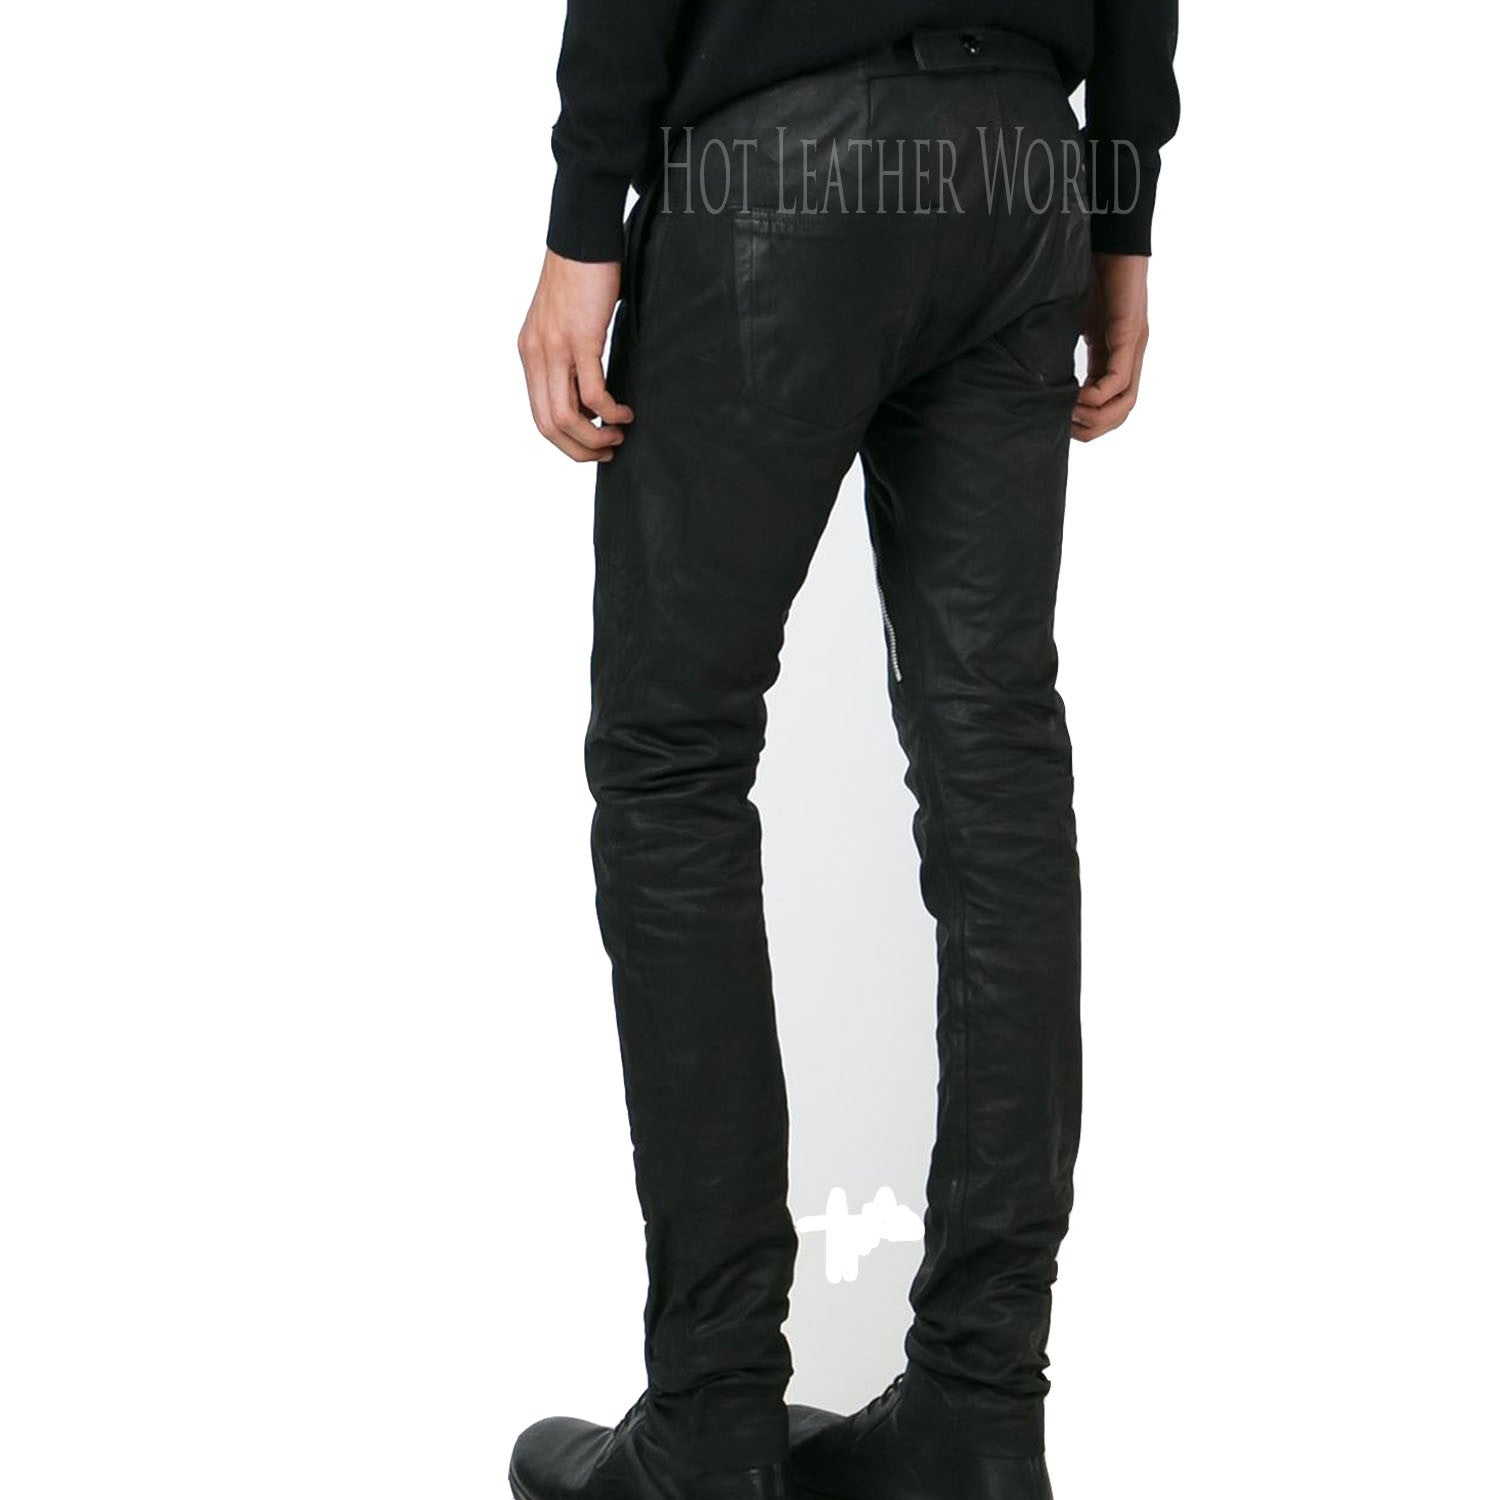 Asymmetric Zip Skinny Trousers For Men -  HOTLEATHERWORLD